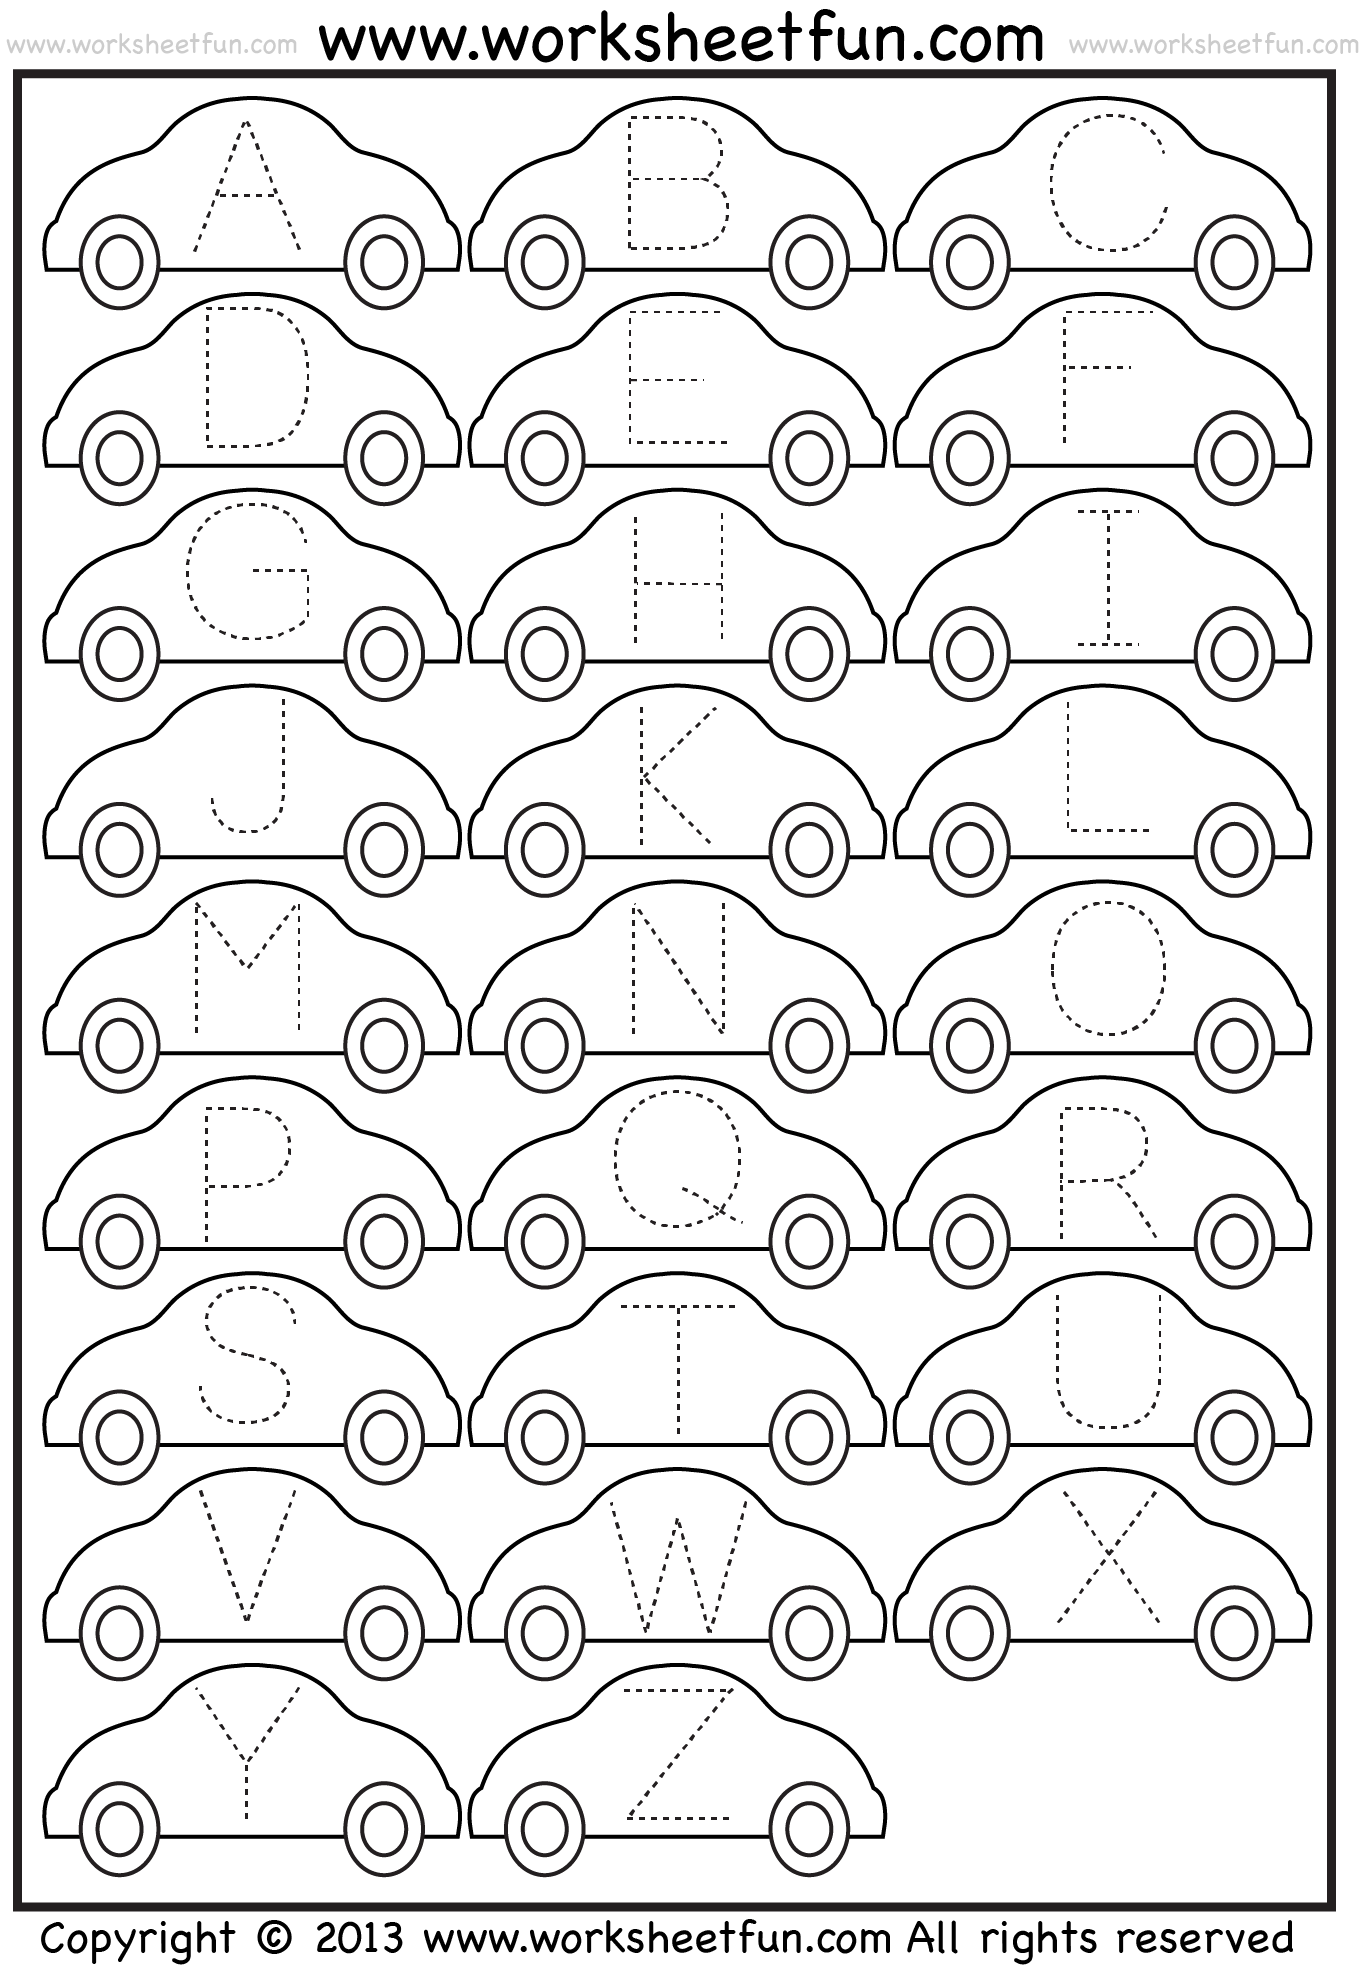 Letter Tracing Worksheet Car Free Printable Worksheets Worksheetfun